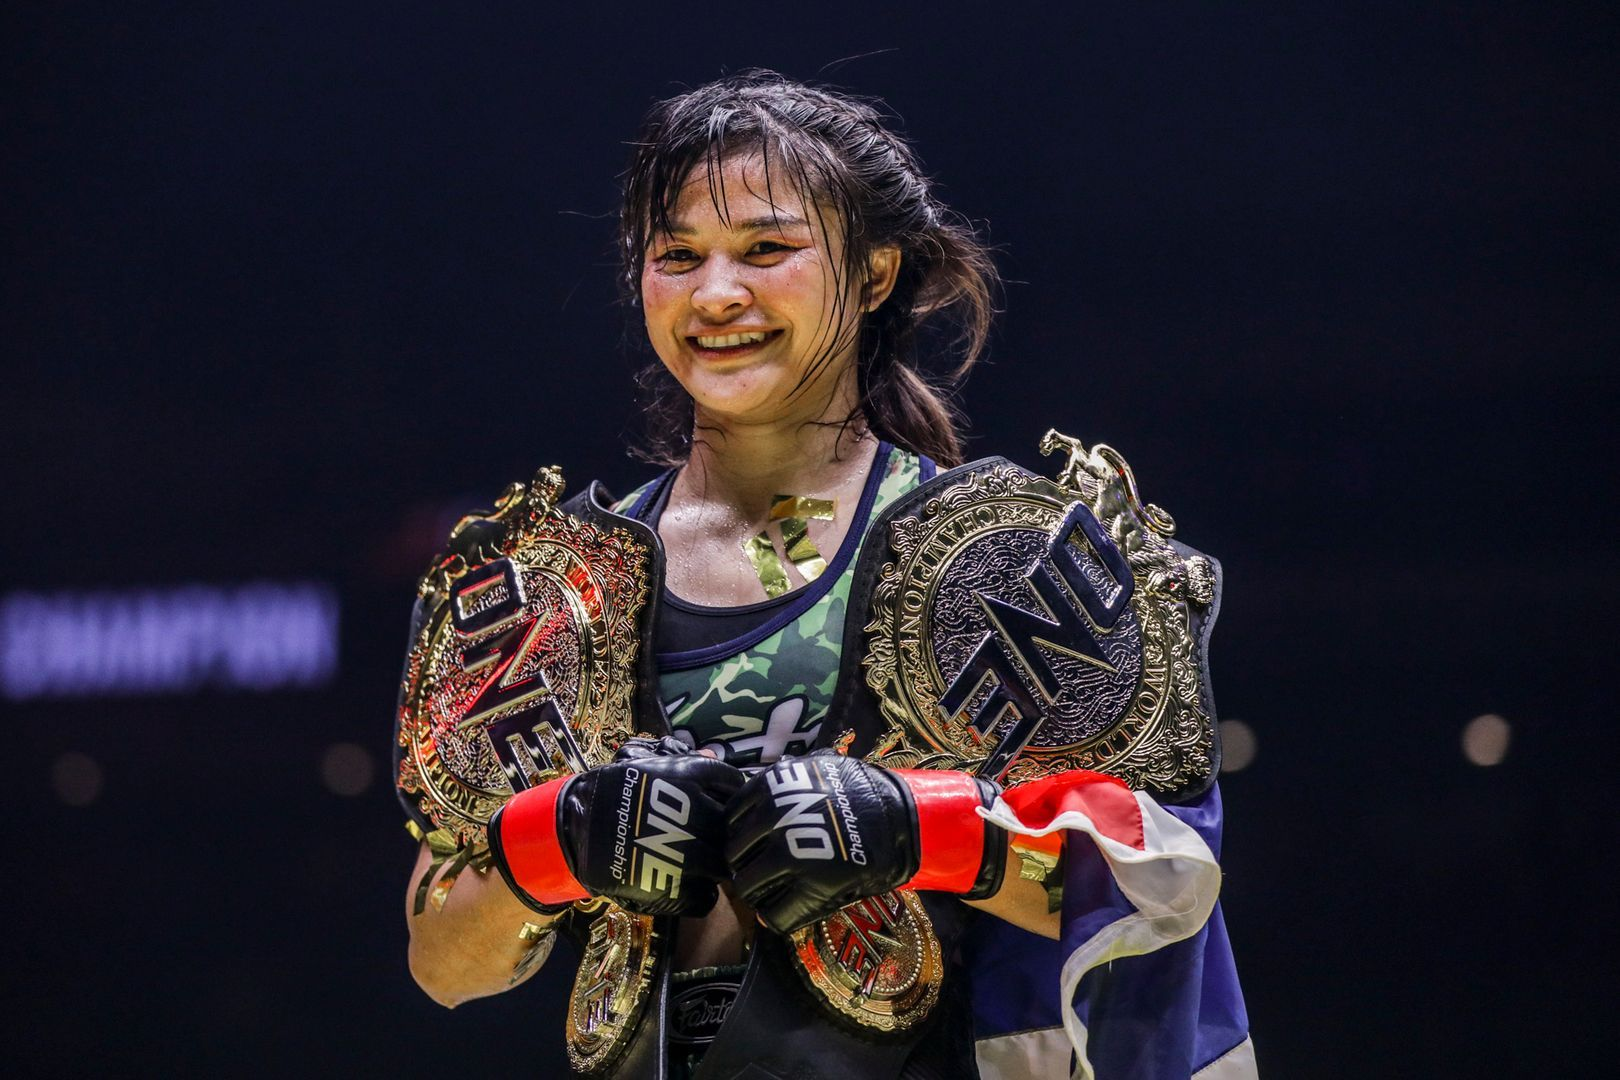 Stamp Fairtex with her ONE Atomweight Muay Thai and Kickboxing World Title belts